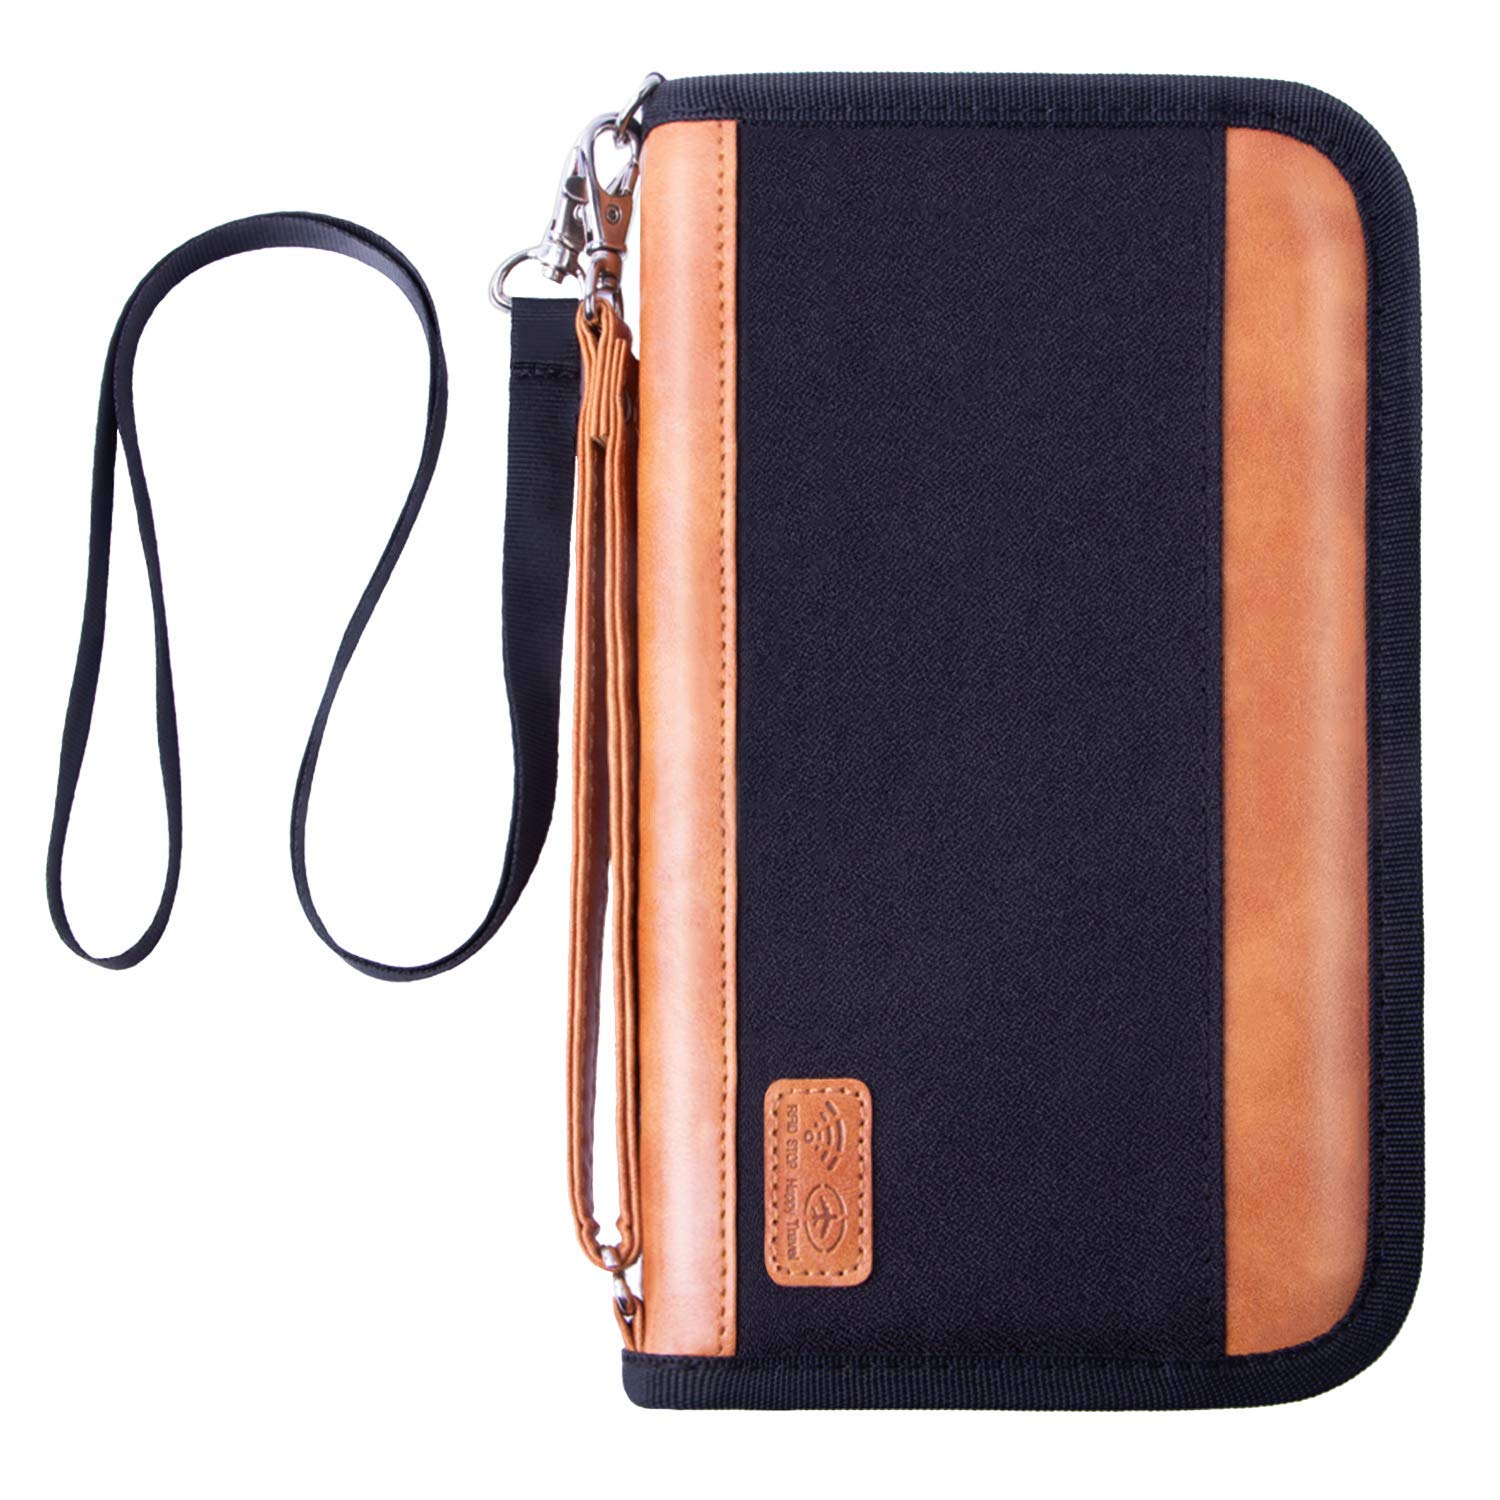 Travel Neck Pouch Neck Wallet with RFID Blocking - Passport Holder to Keep Your Cash And Documents Safe